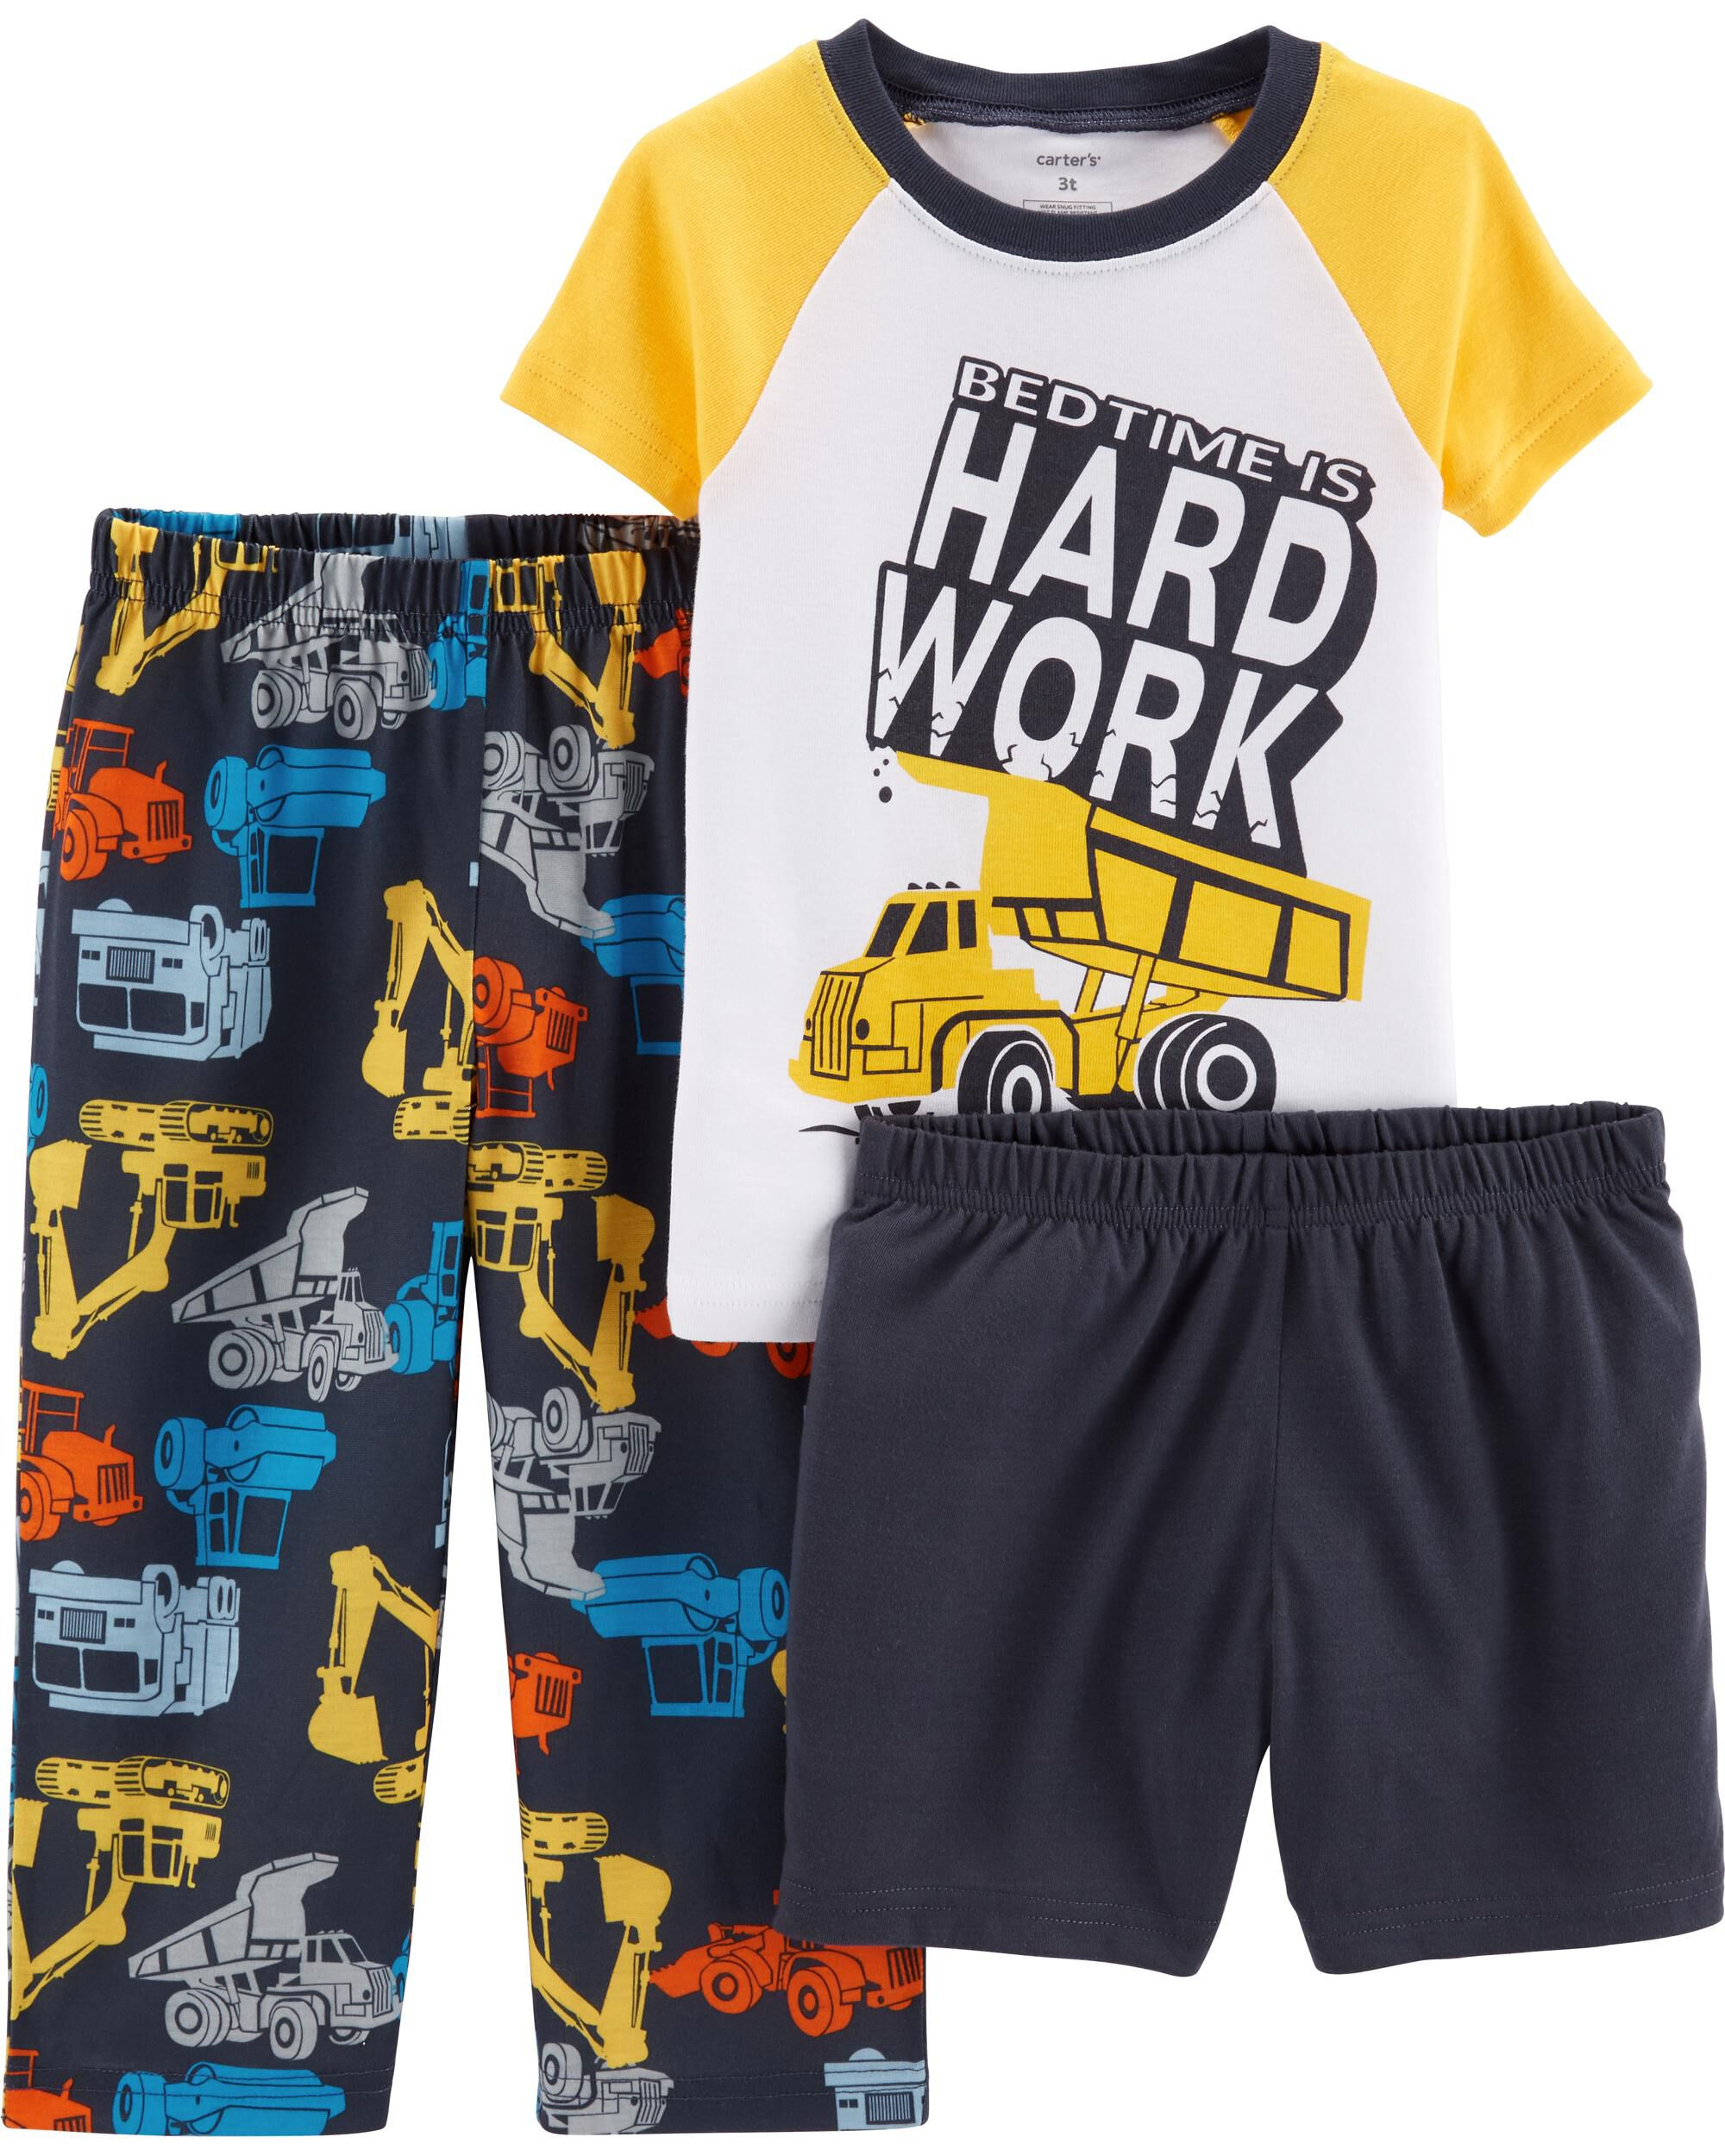 NWT Carter/'s Boys 3T 4T 5T 3-Piece Bedtime is Hard Work Construction Pajama PJs